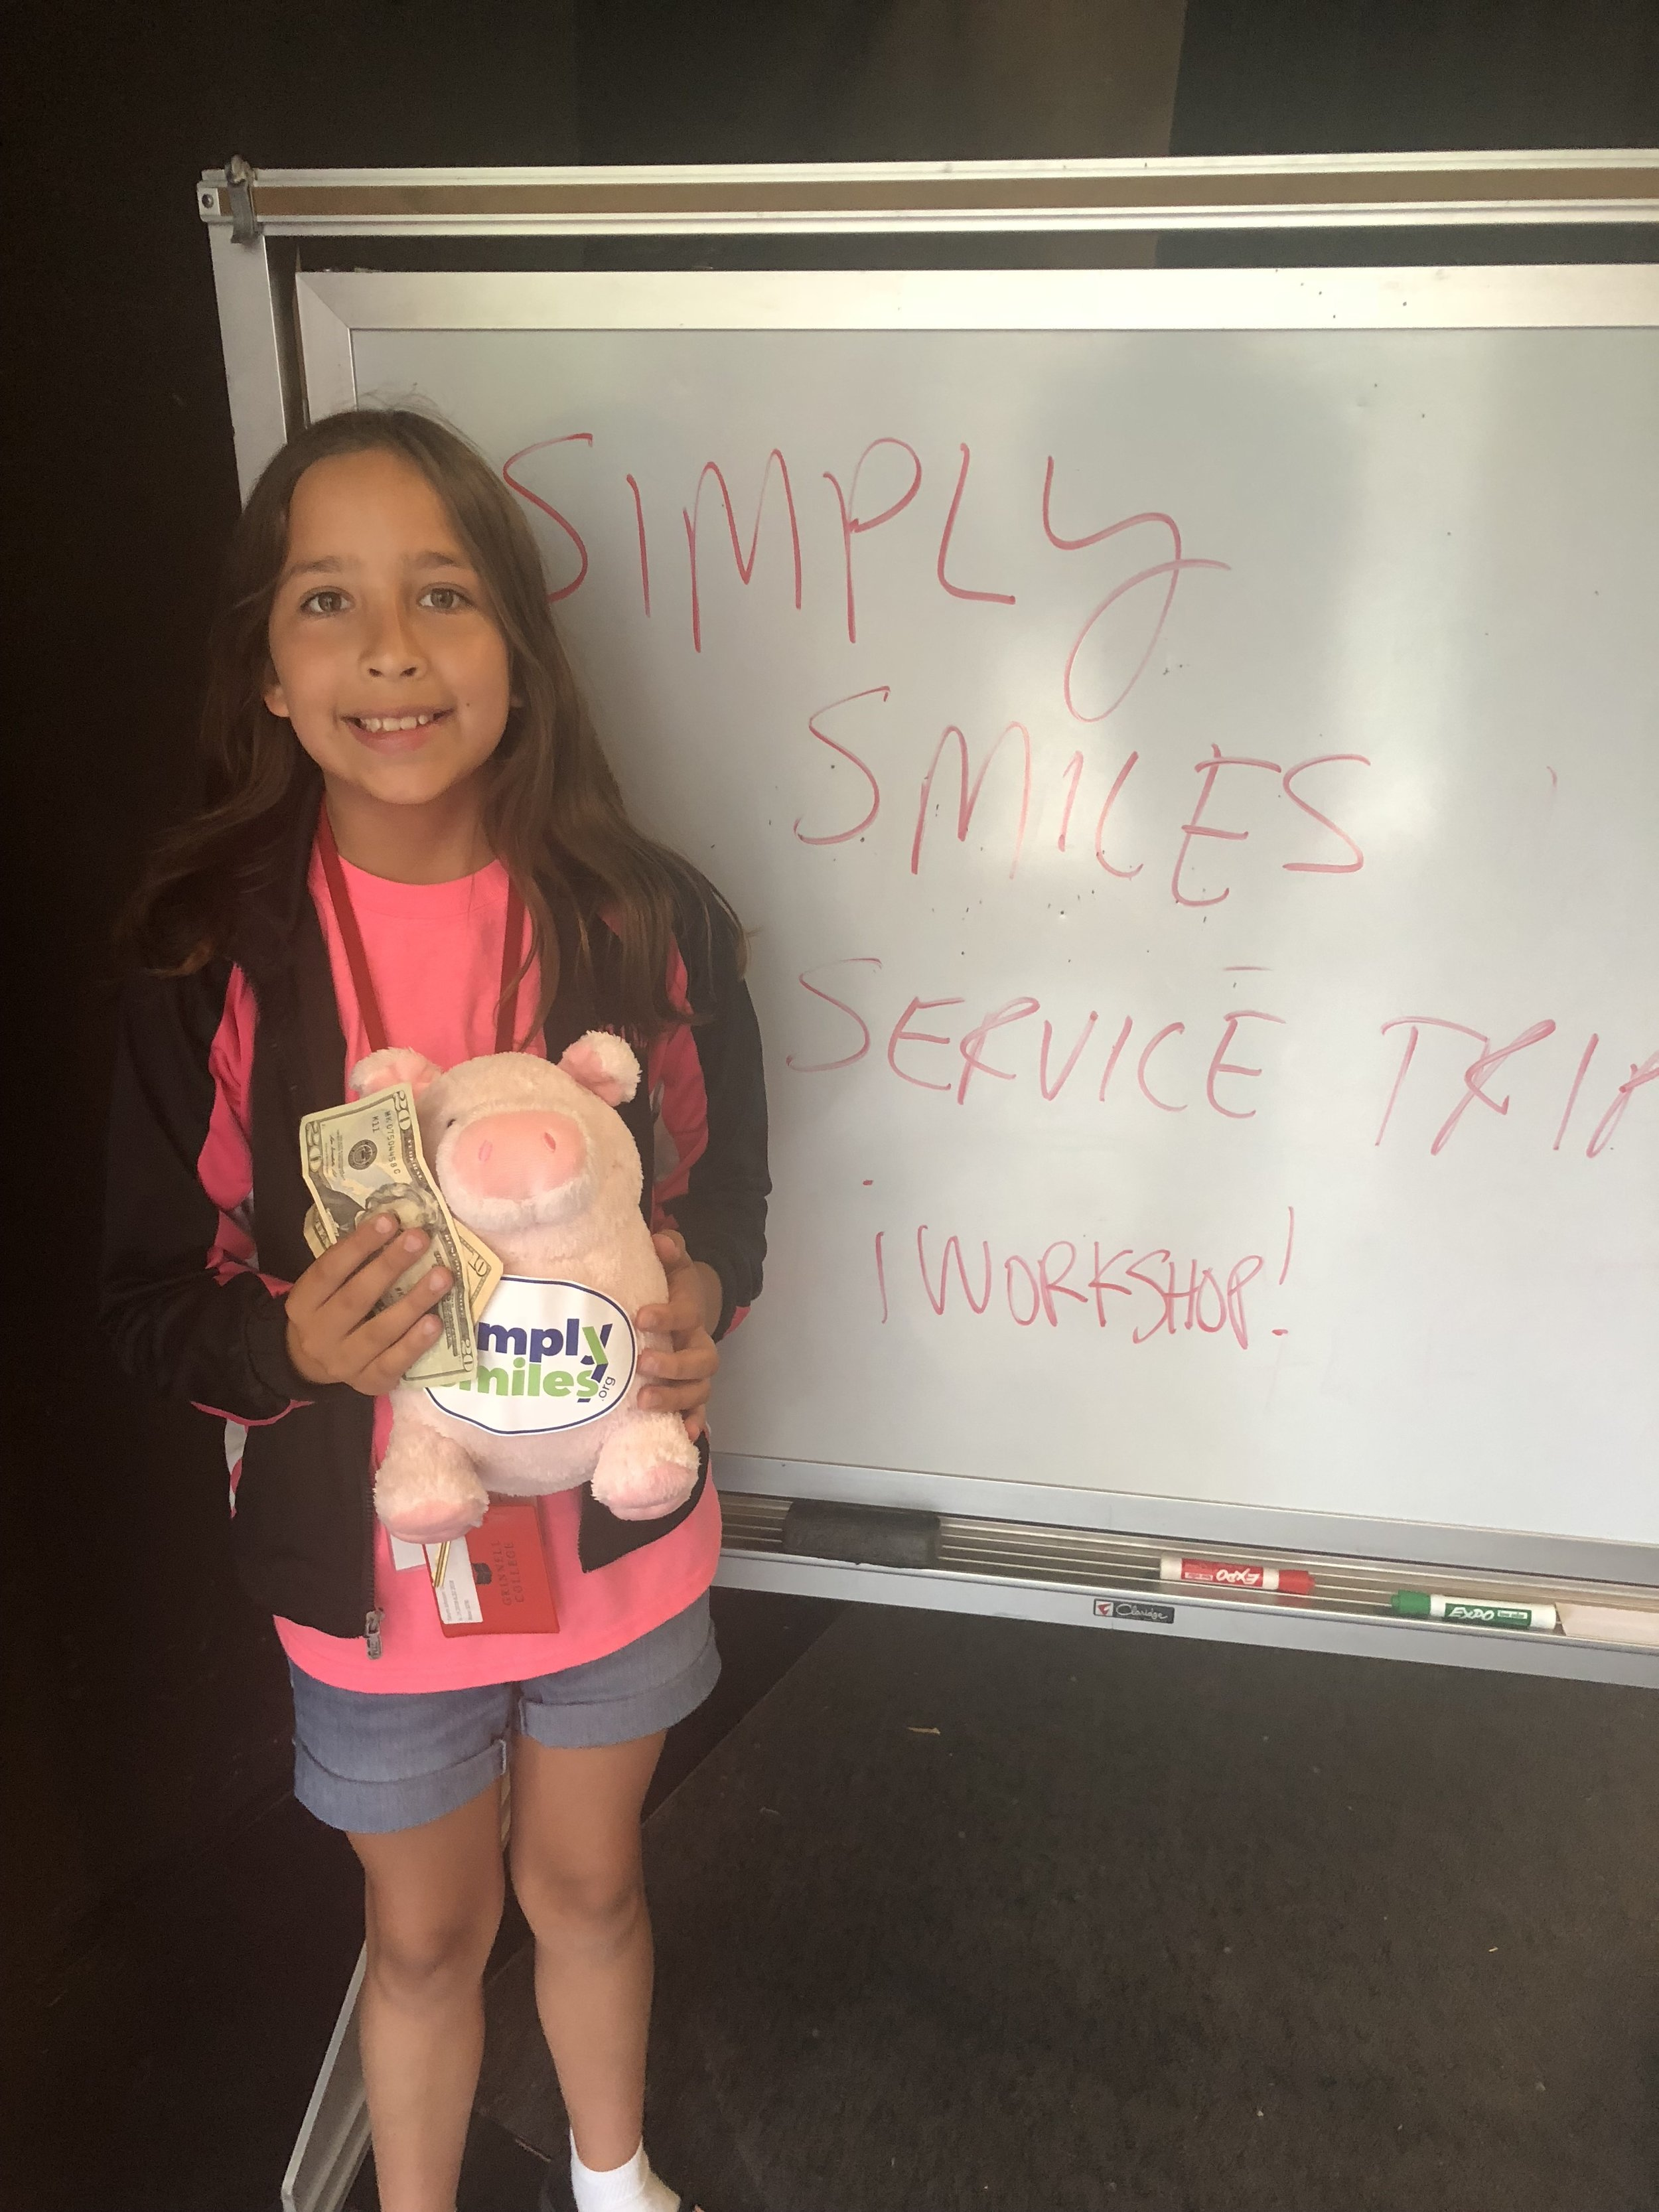 A young UCC member collecting donations for Simply Smiles at the 2018 Eastern Regional Youth Event after hearing President/Founder Bryan Nurnberger speak